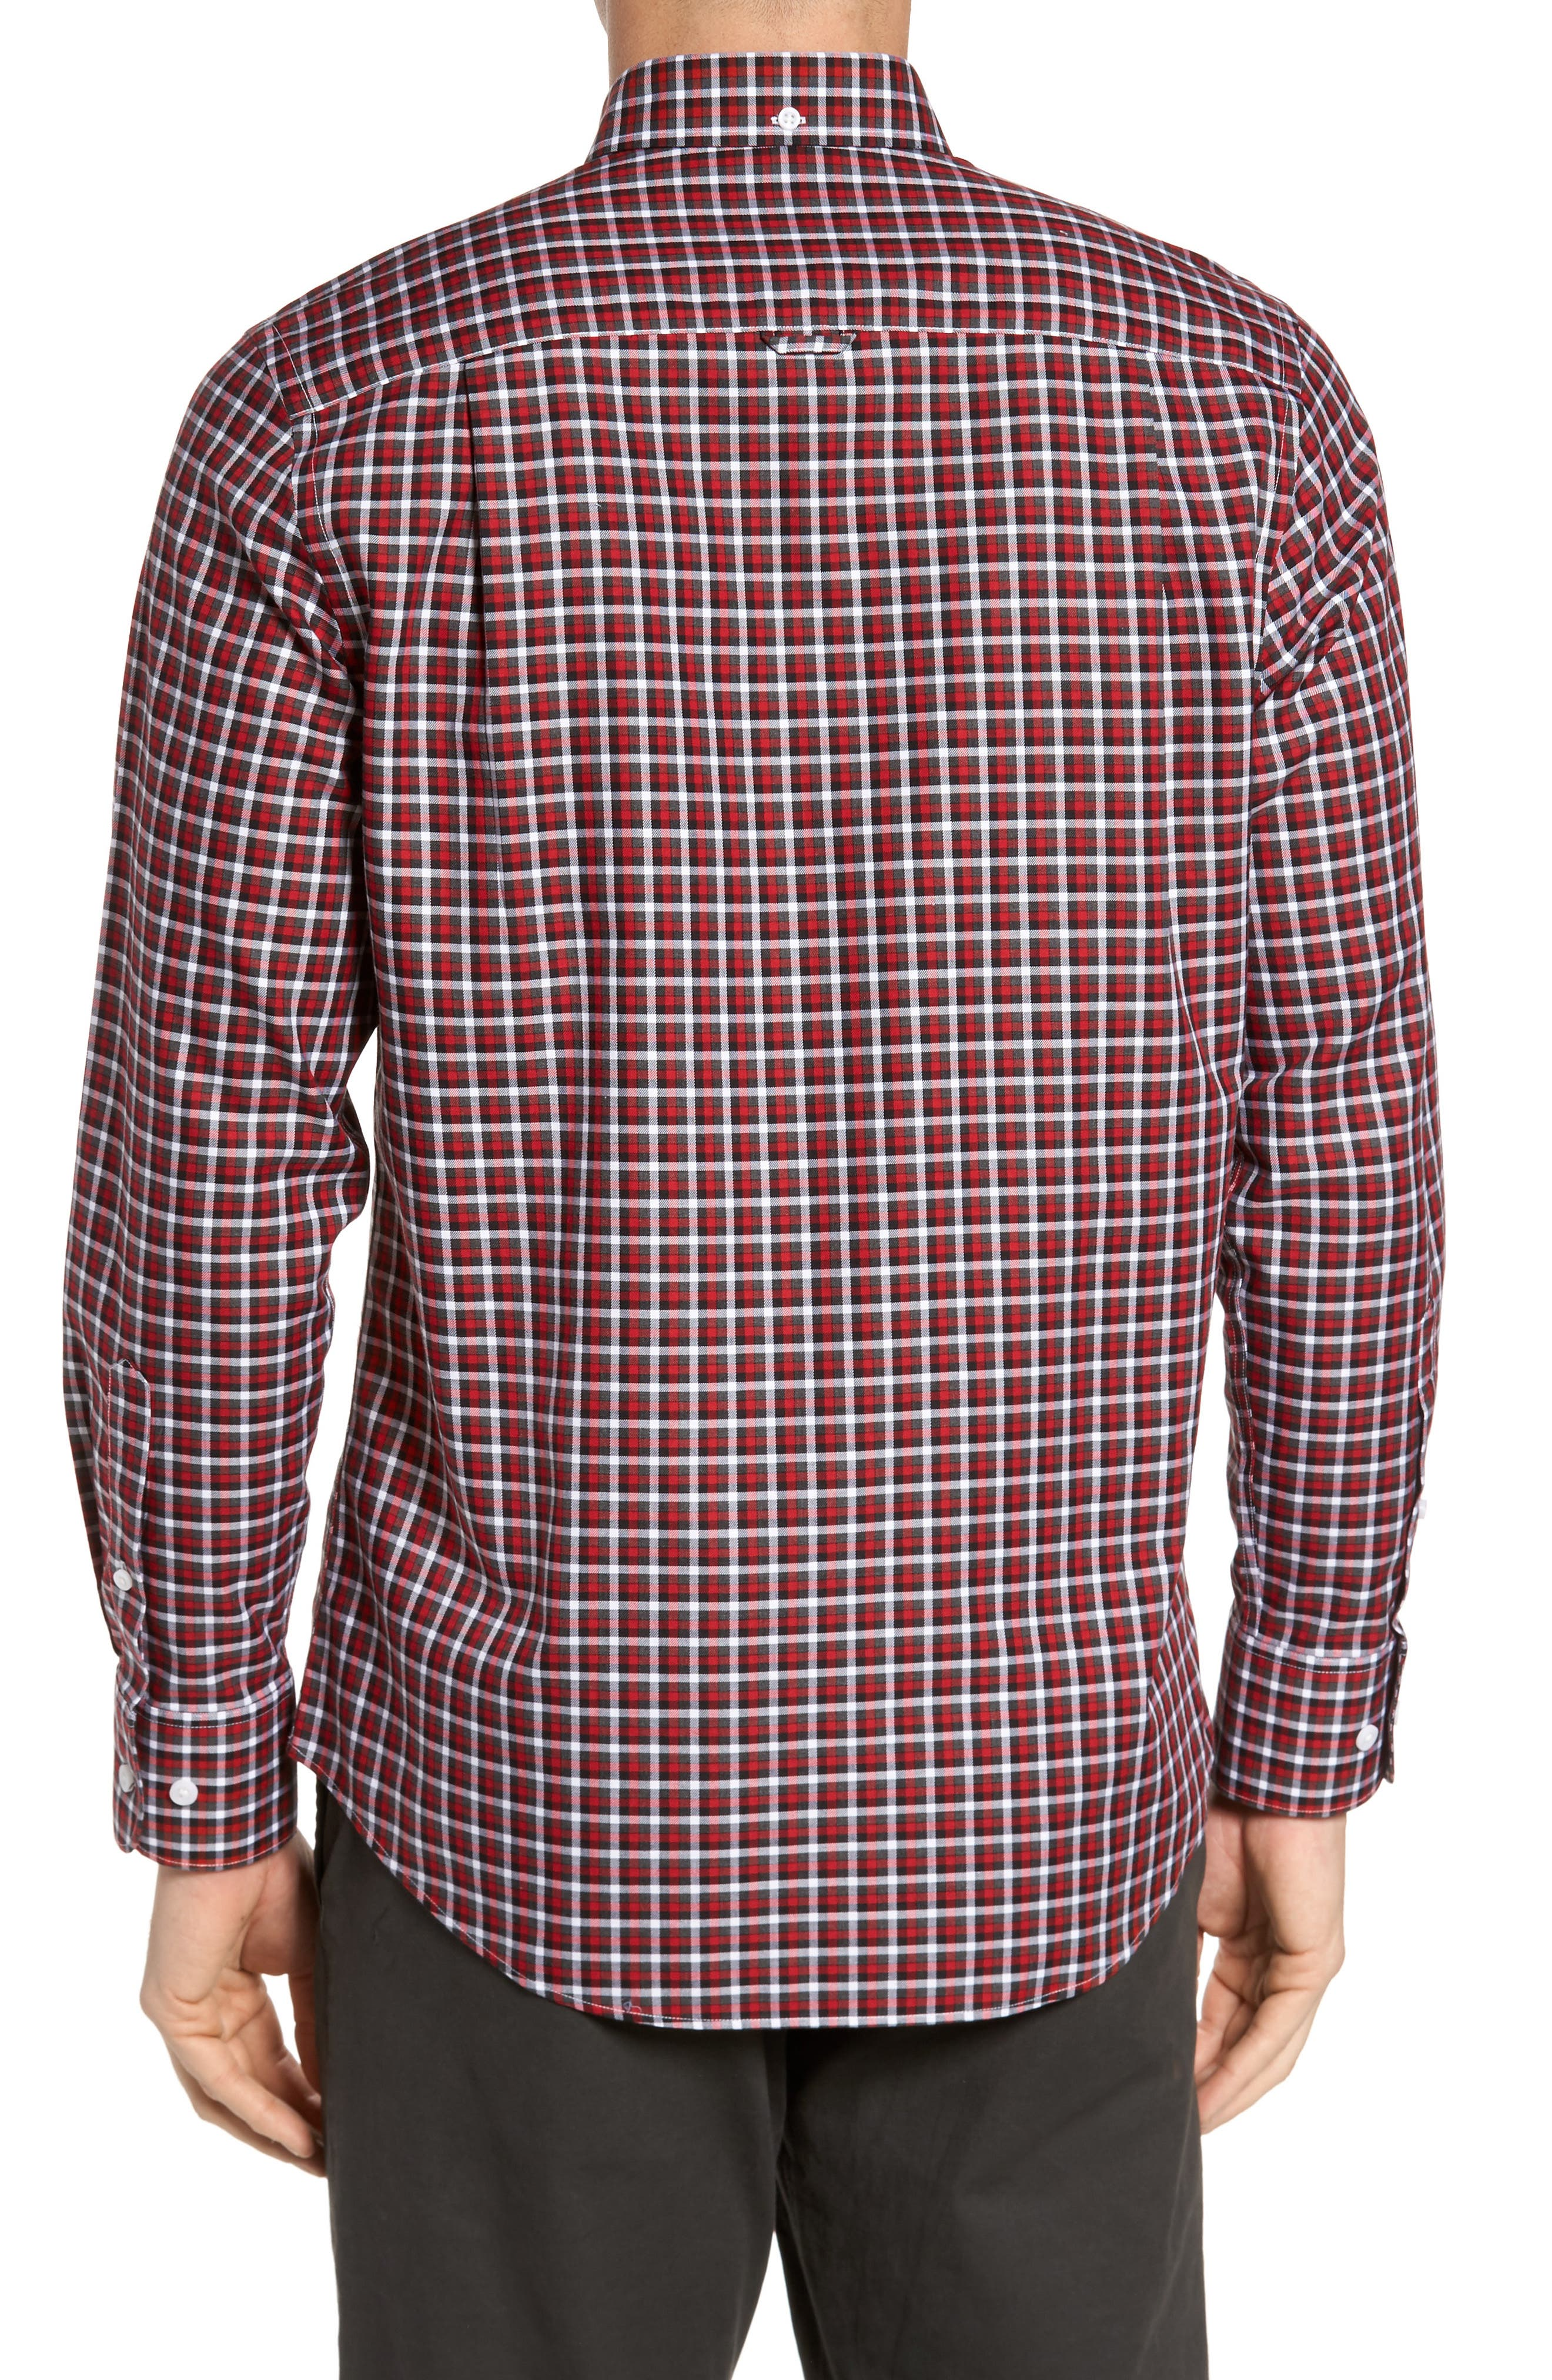 Smartcare<sup>™</sup> Regular Fit Plaid Sport Shirt,                             Alternate thumbnail 2, color,                             Red Grey Heather Check